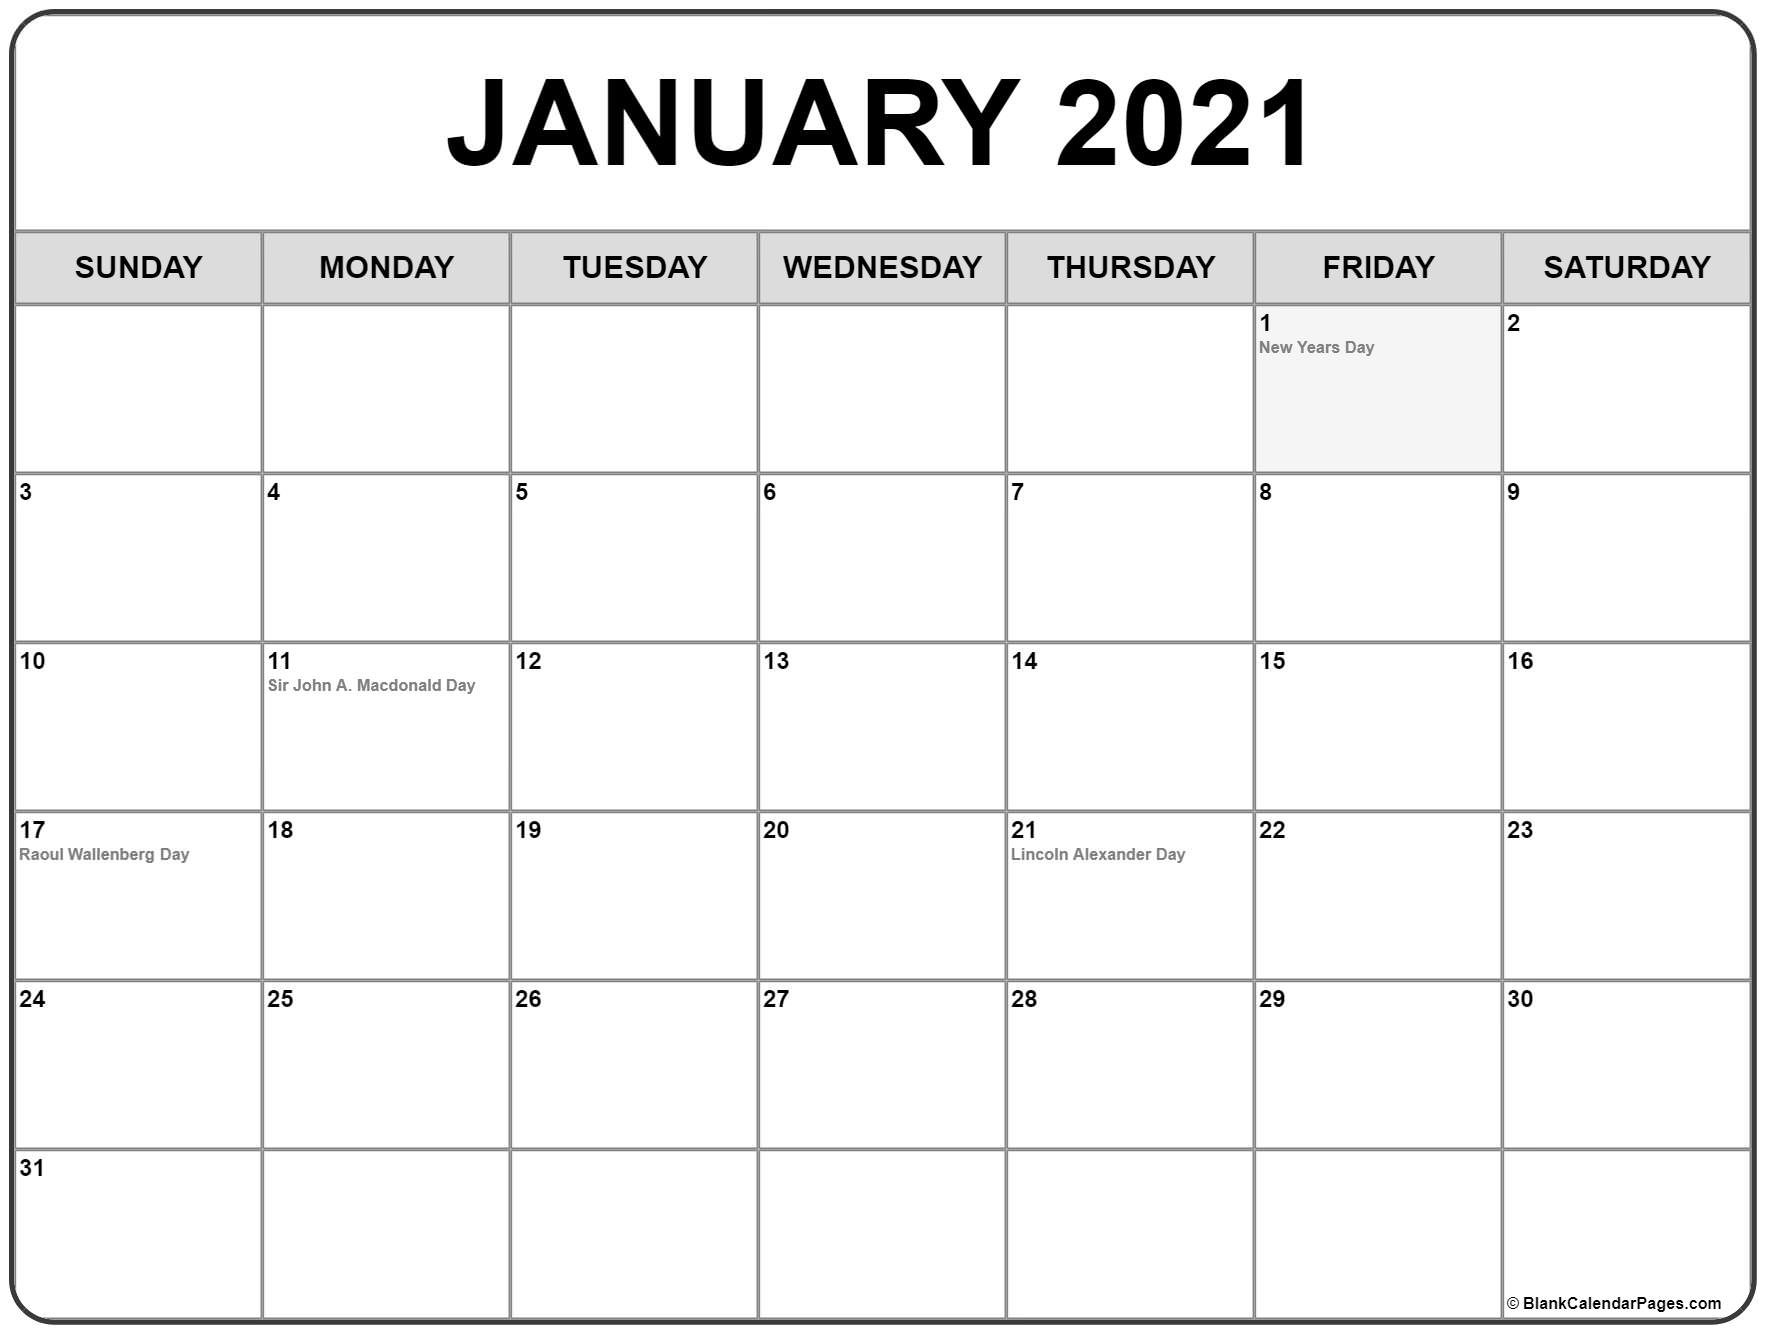 January 2021 Calendar With Holidays throughout 2021 Monthly Calendar With Holidays Printable Pdf Photo